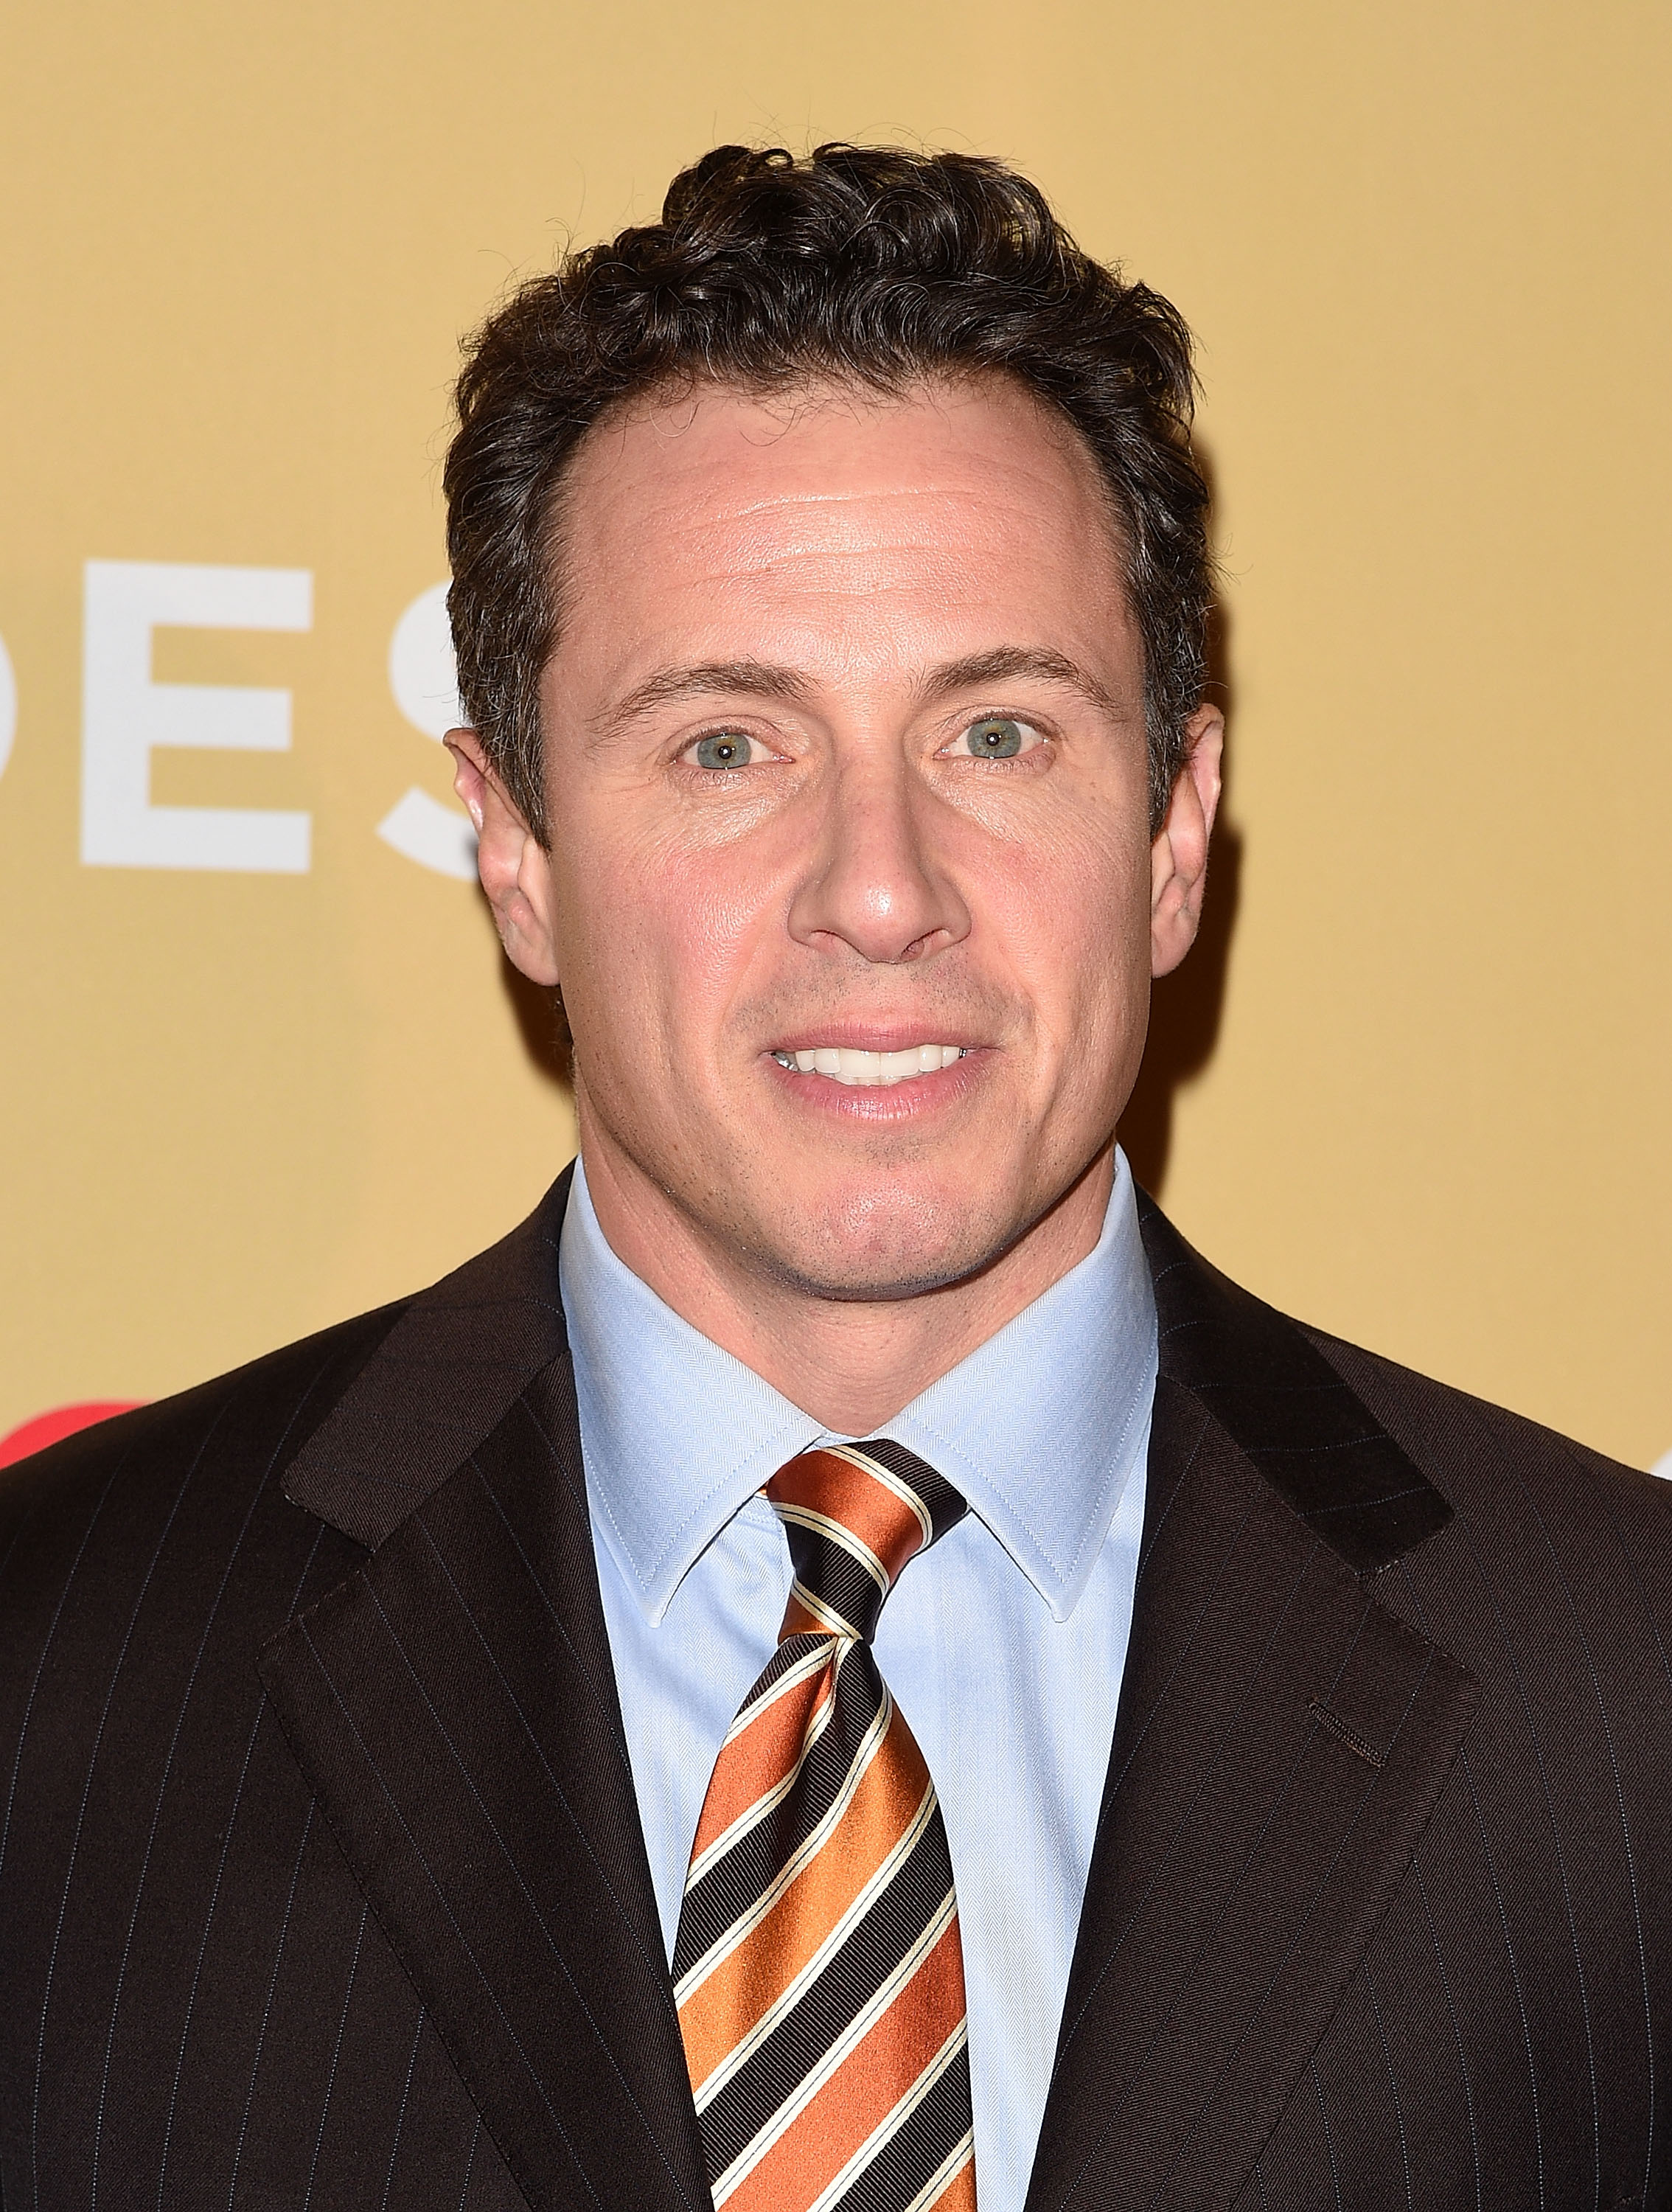 Chris Cuomo at the 2014 CNN Heroes: An All-Star Tribute at the American Museum of Natural History   Photo: Getty Images